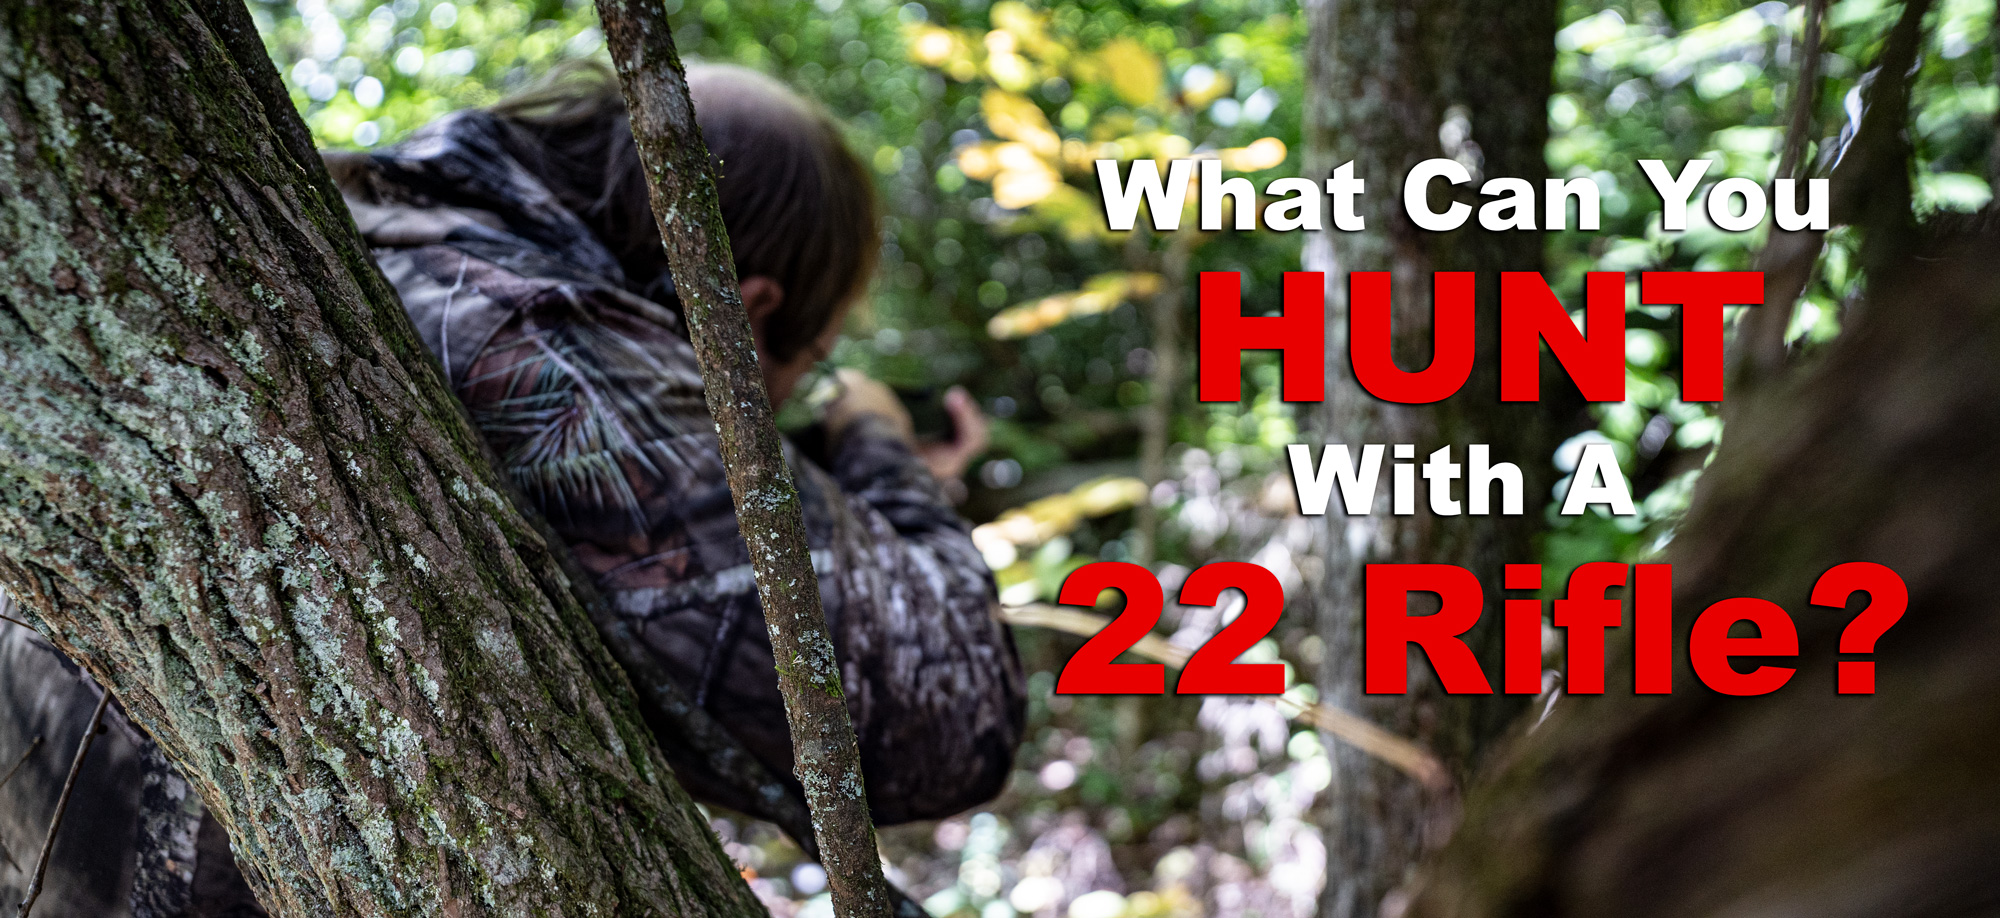 what can you hunt with a 22 rifle in the woods?